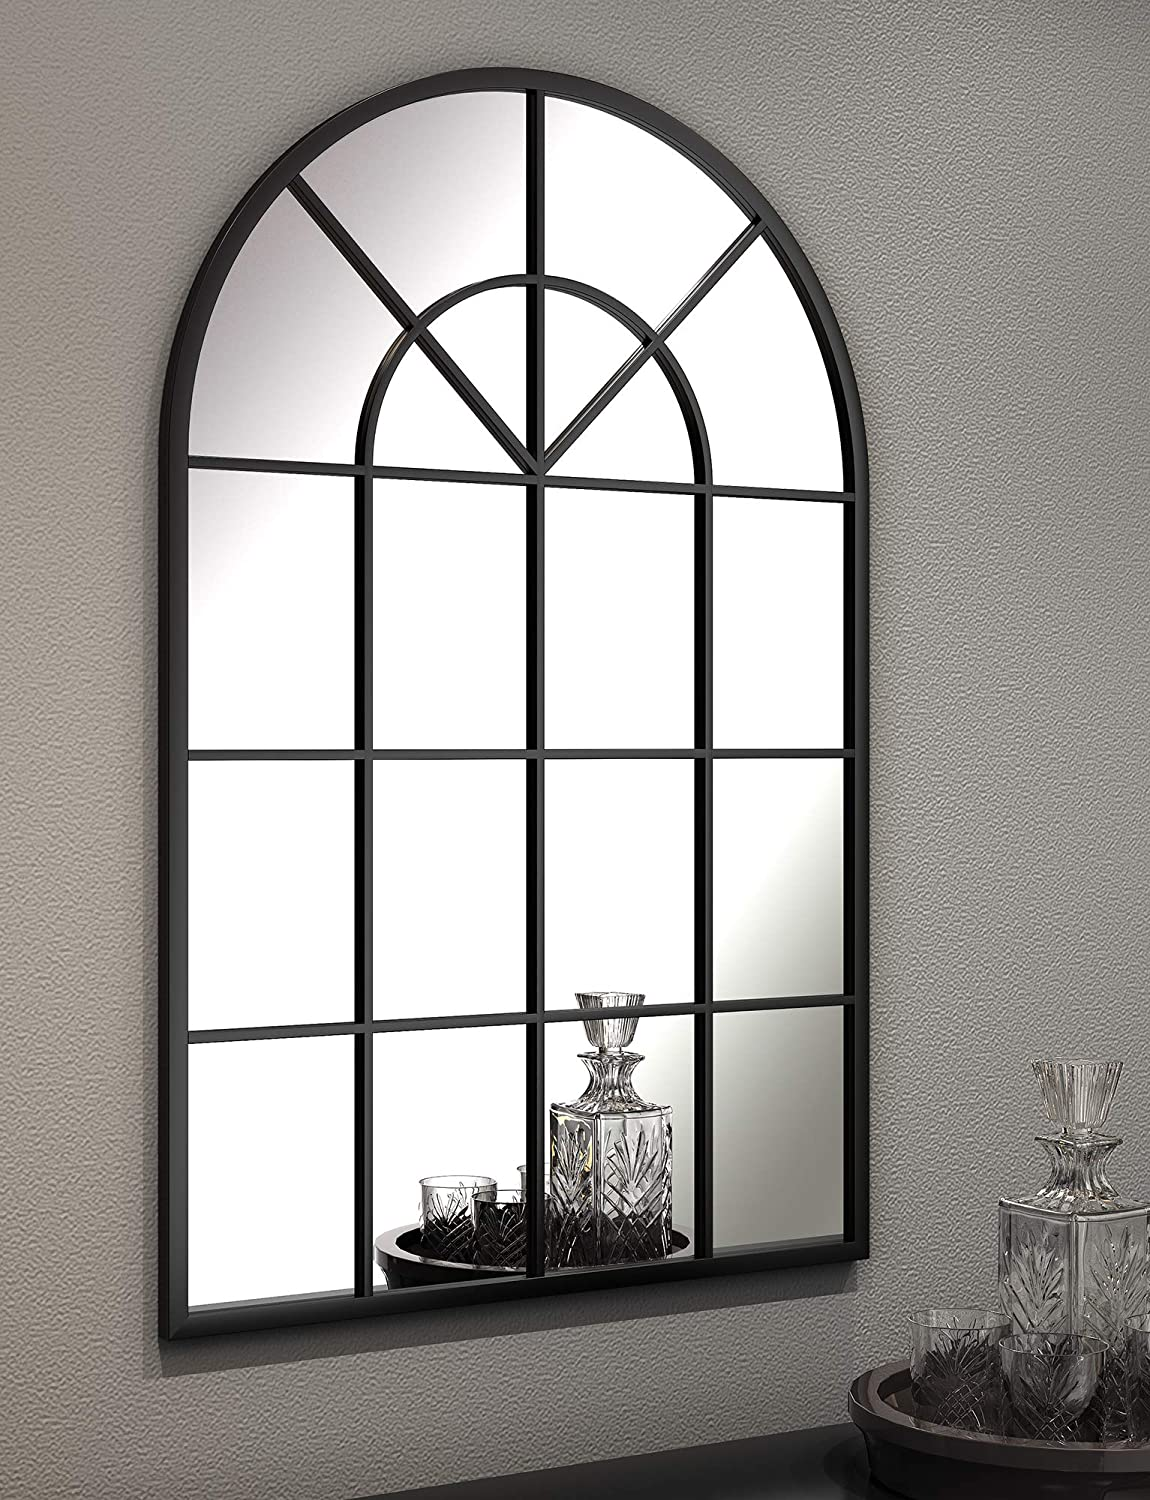 Black Arched Window Wall Mirrors - Large Metal Frame 32X48 in Double Modern Vanity Bedroom Decorative Mirror Farmhouse Rustic Vintage Entryway Wall Mirror